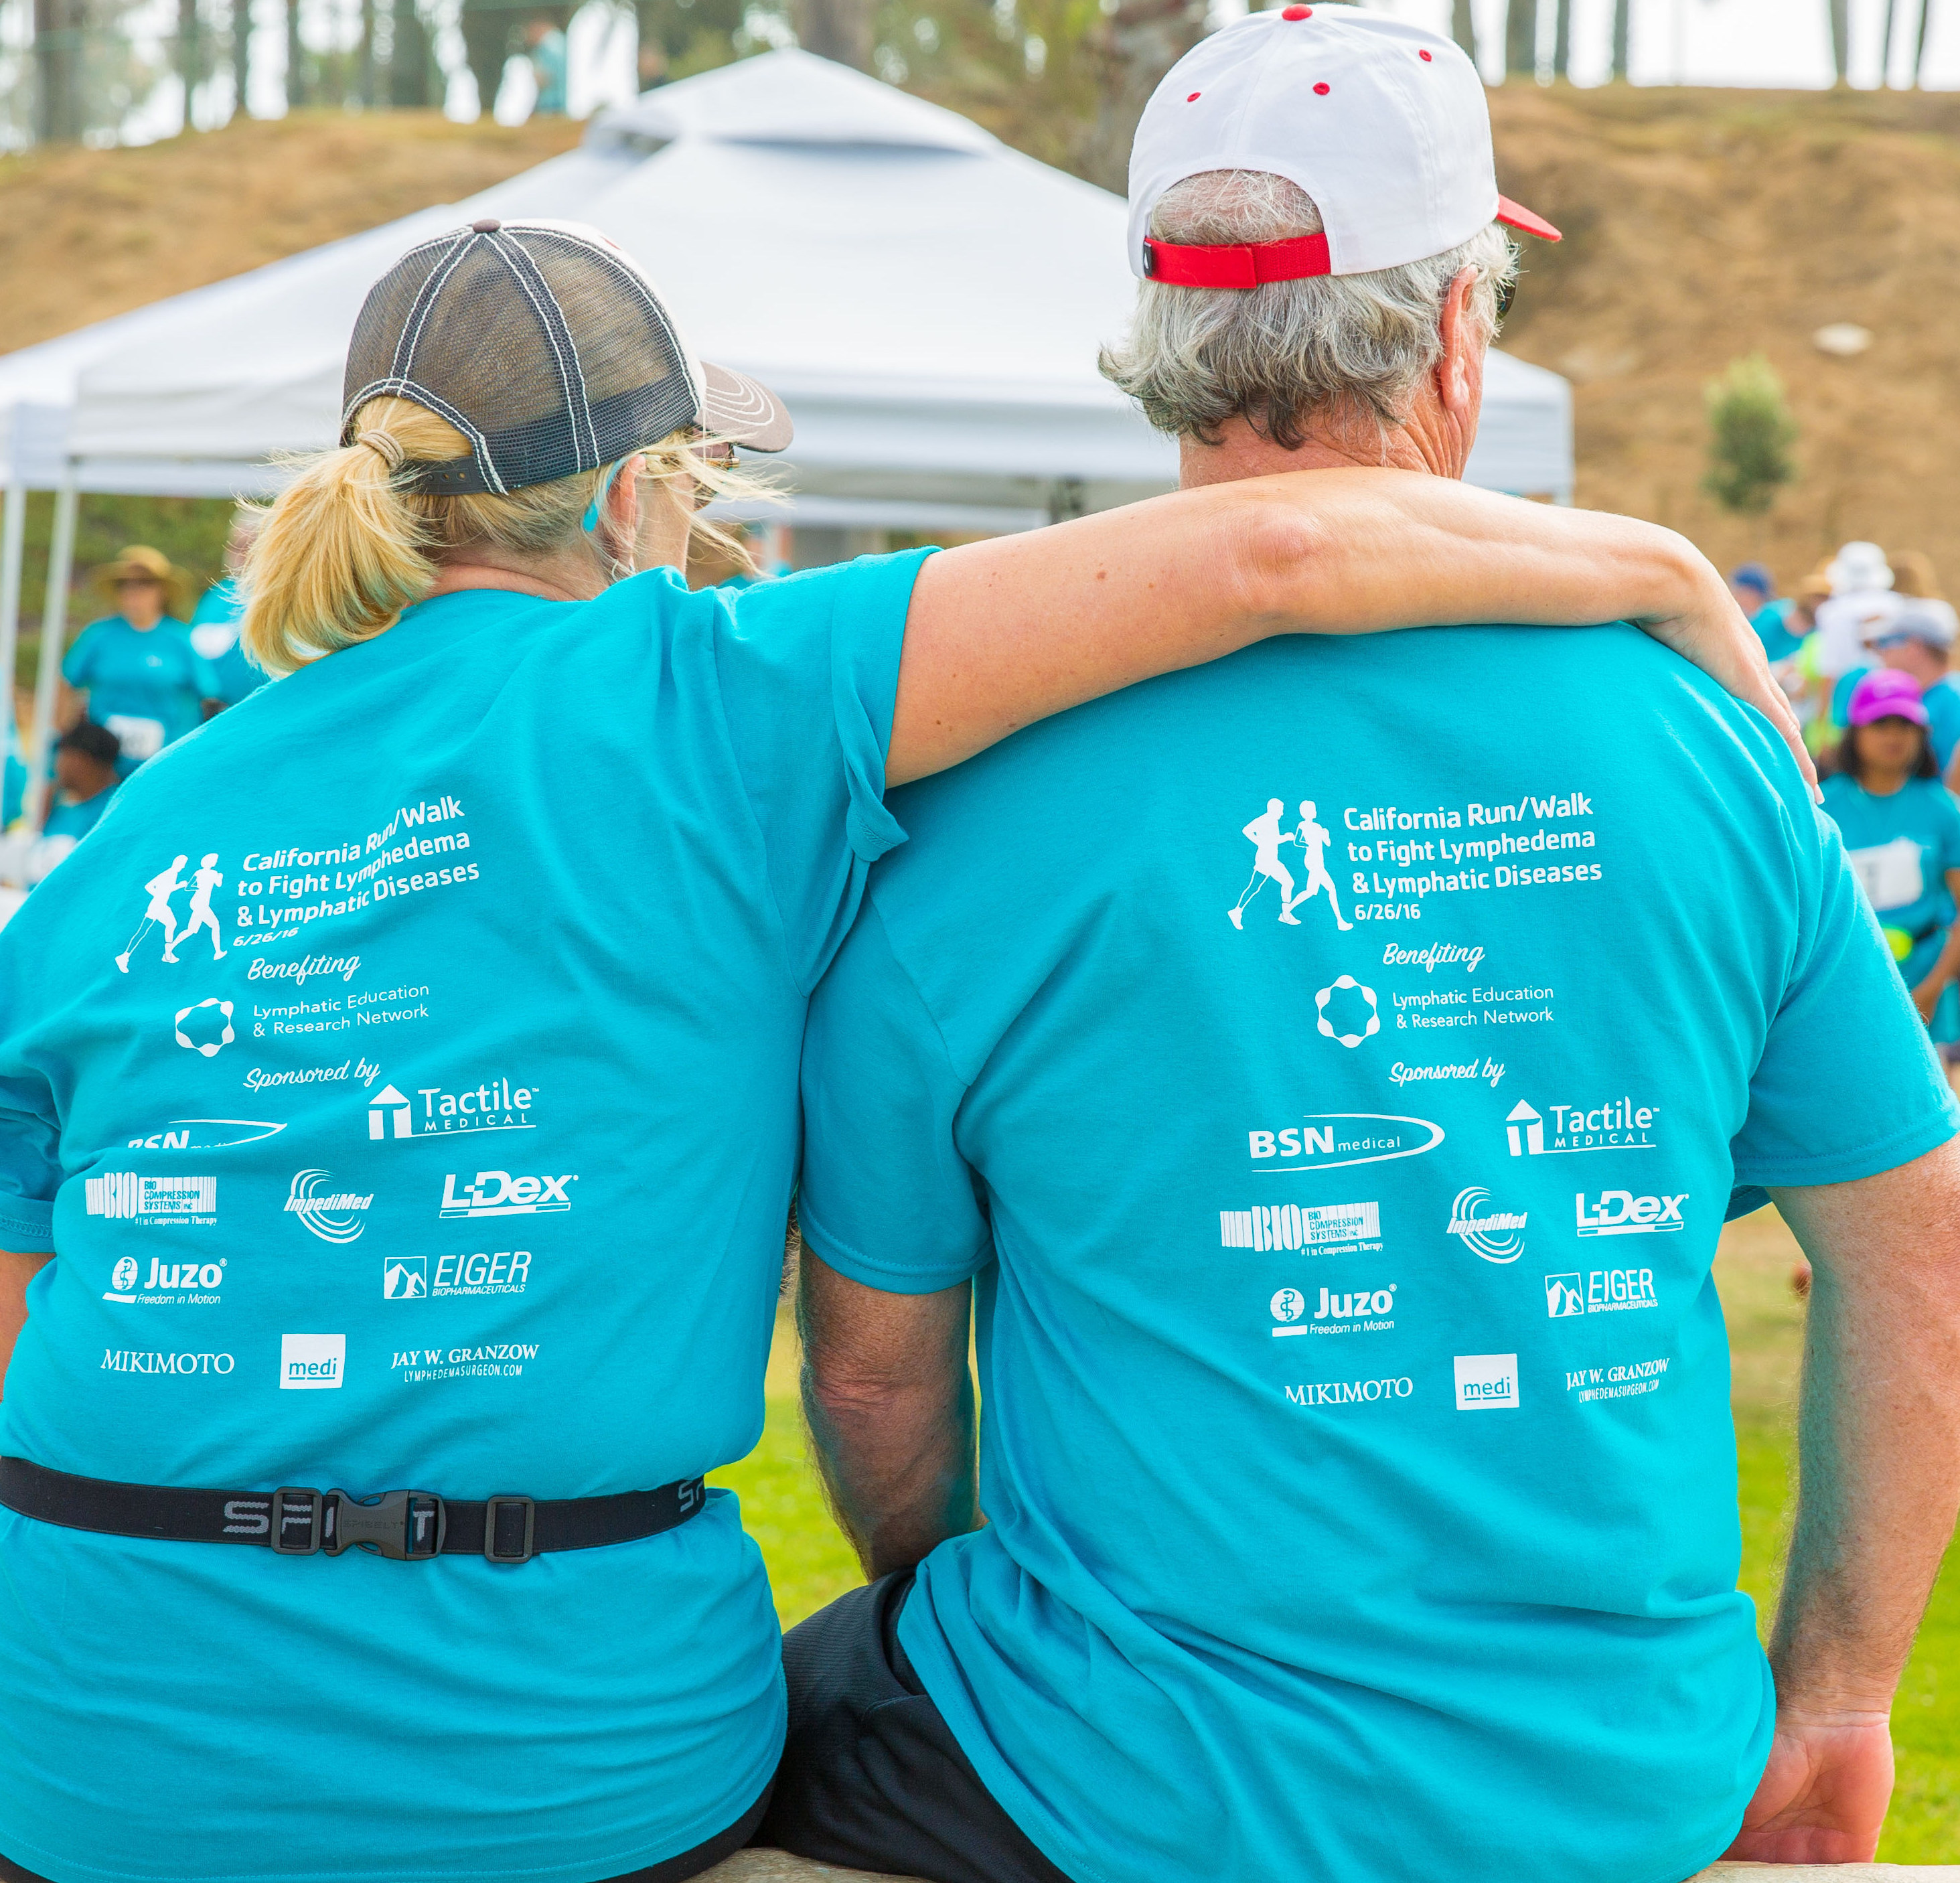 2017 CO Run/Walk to Fight Lymphedema & Lymphatic Diseases Photo